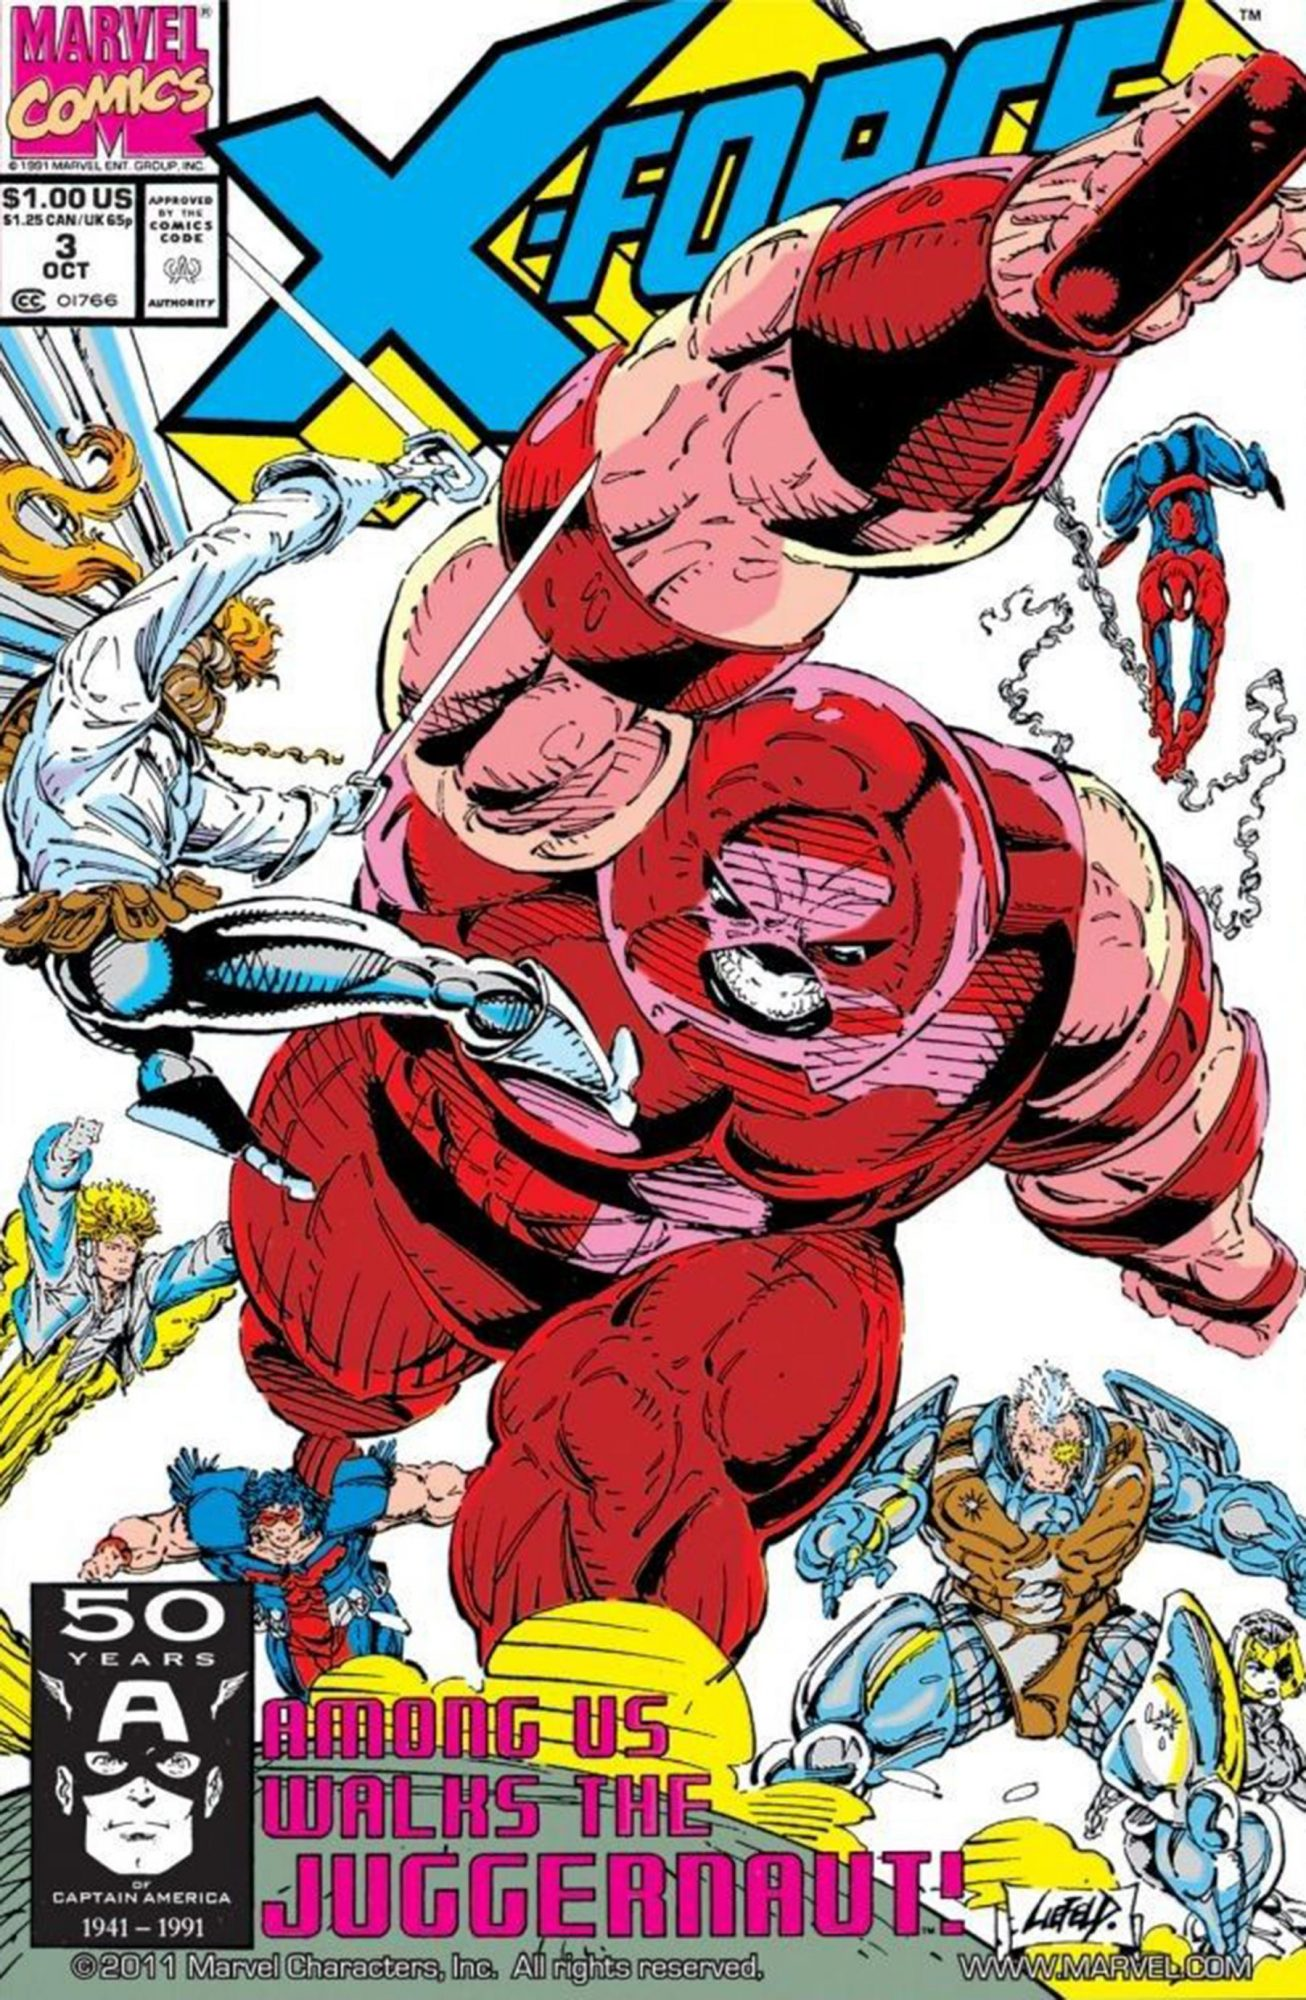 X-Force (1991-2002) #3 CR: Marvel